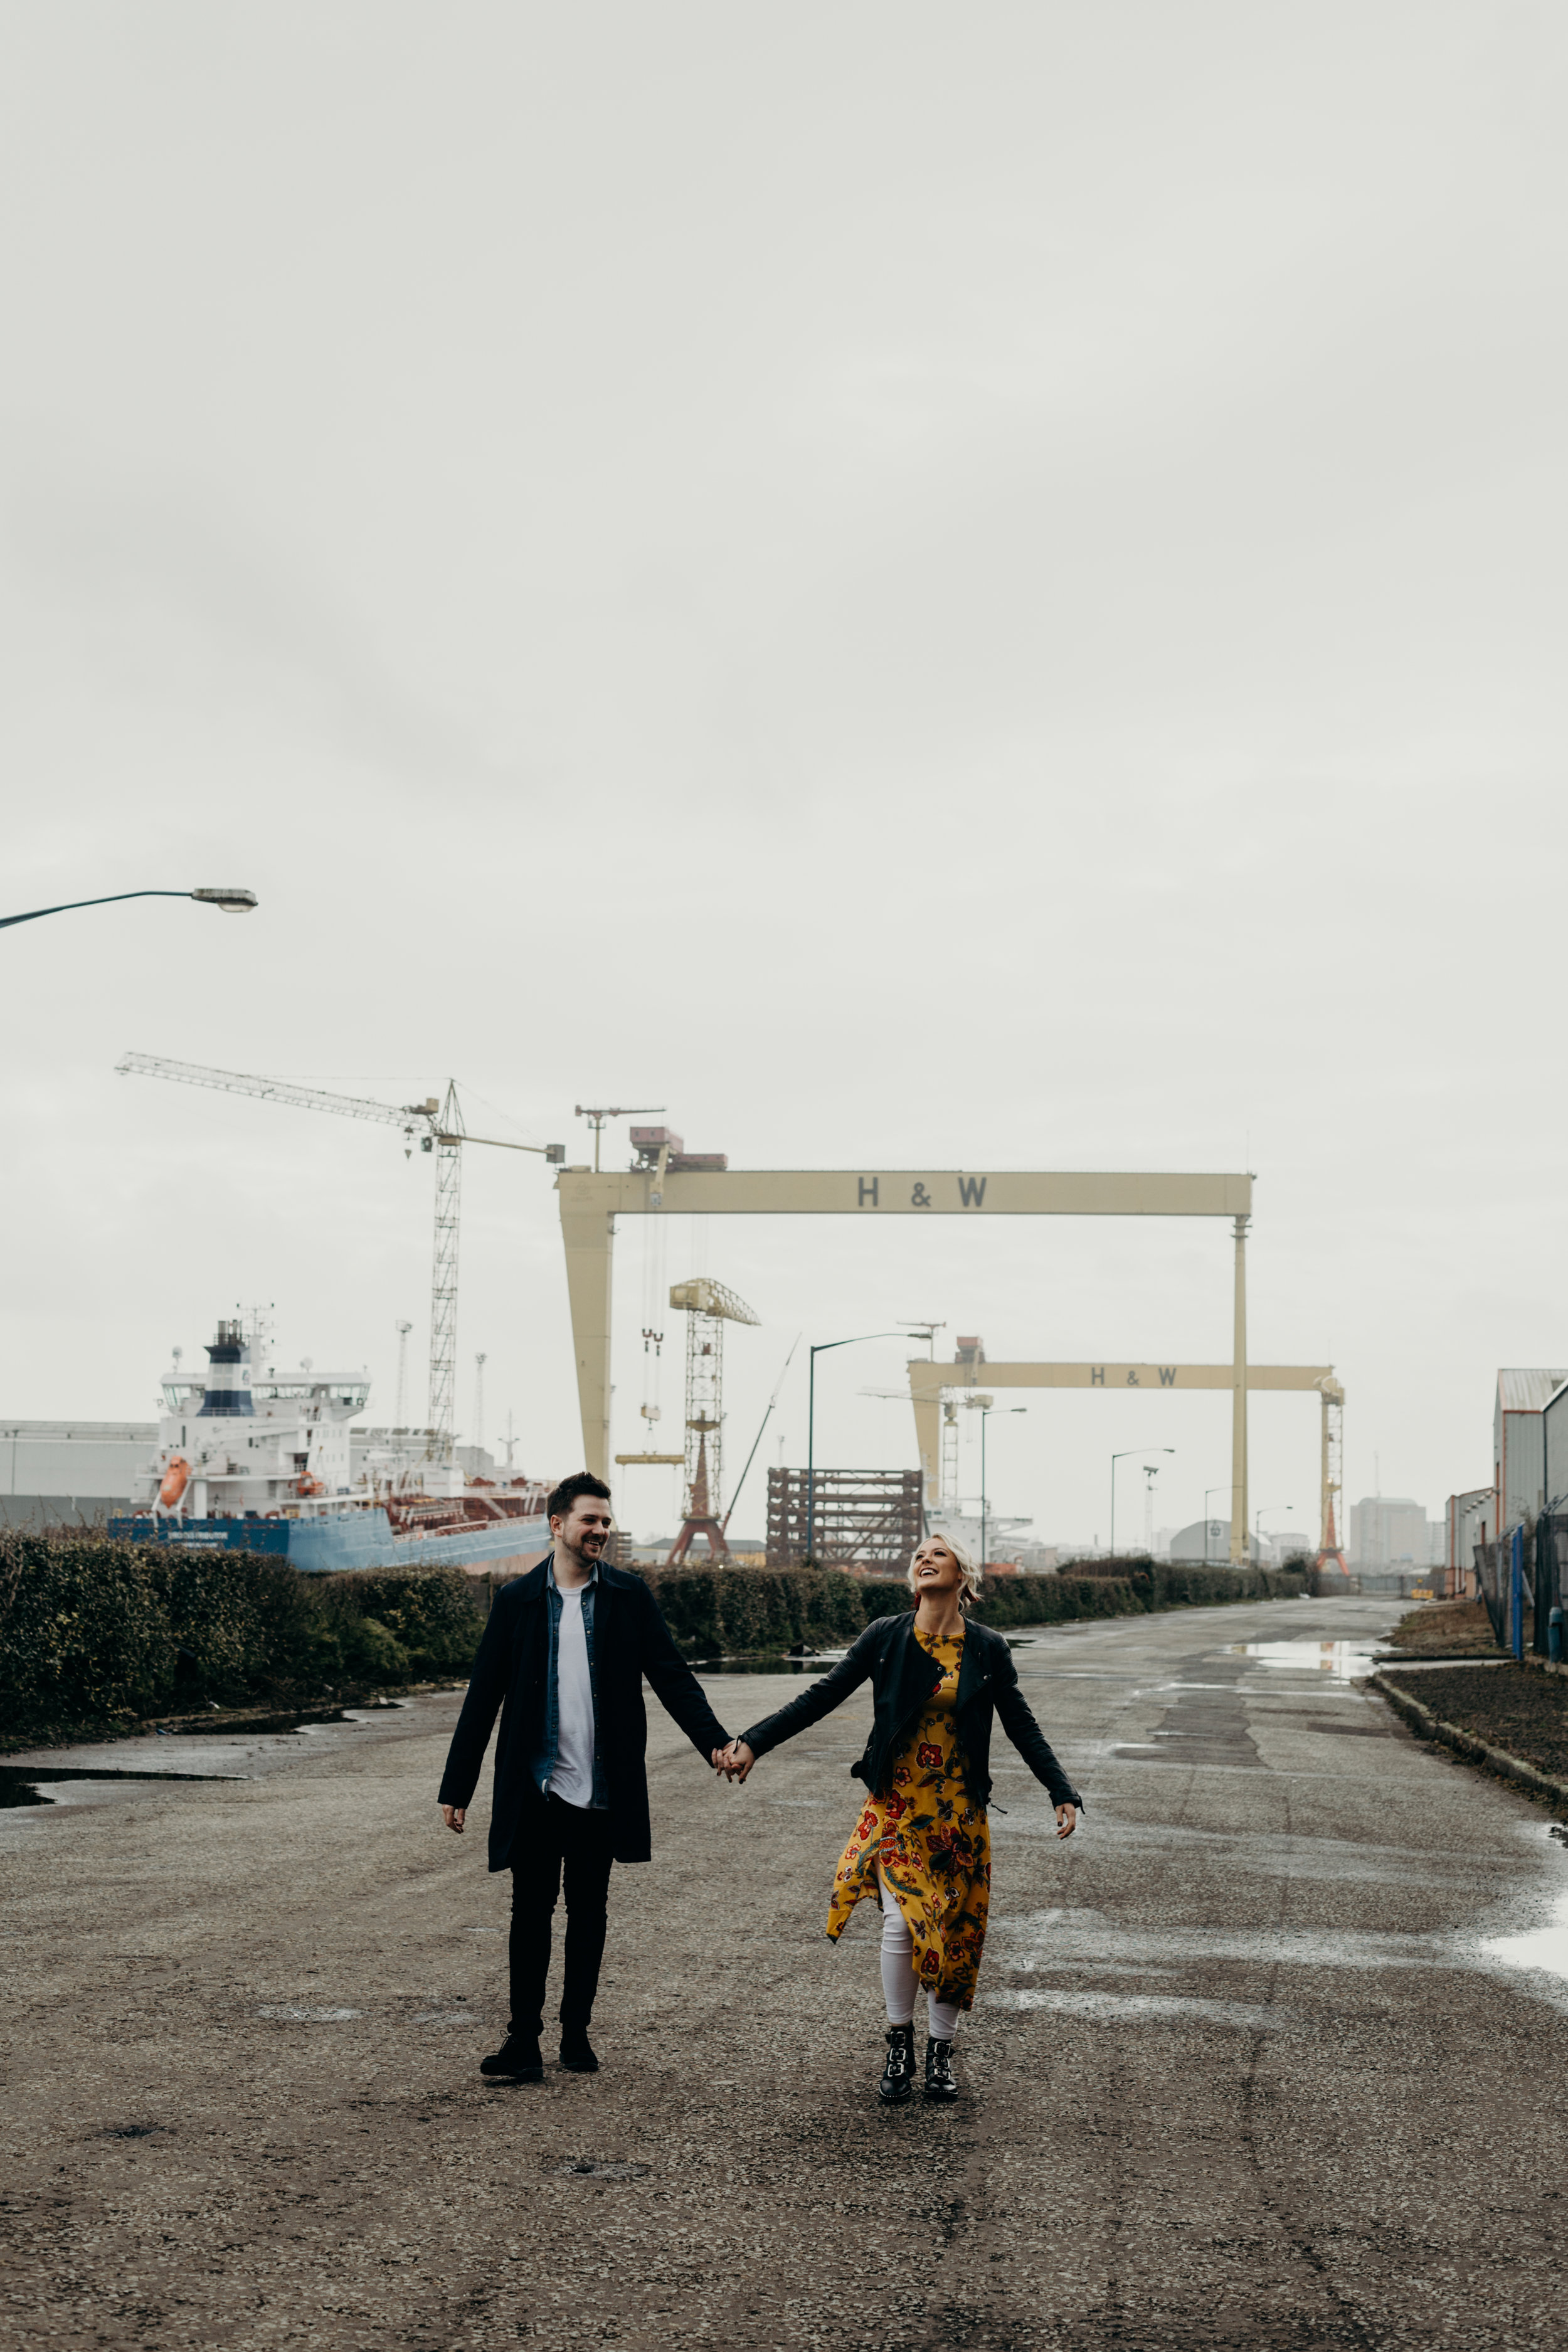 First off we hit the iconic Harland and Wolff. With both Jade and Timmy appreciating fashion they chose complimenting outfits for the location and of course, each other. We took a relaxed approach to create an adventure feel for the day and it totally paid off.